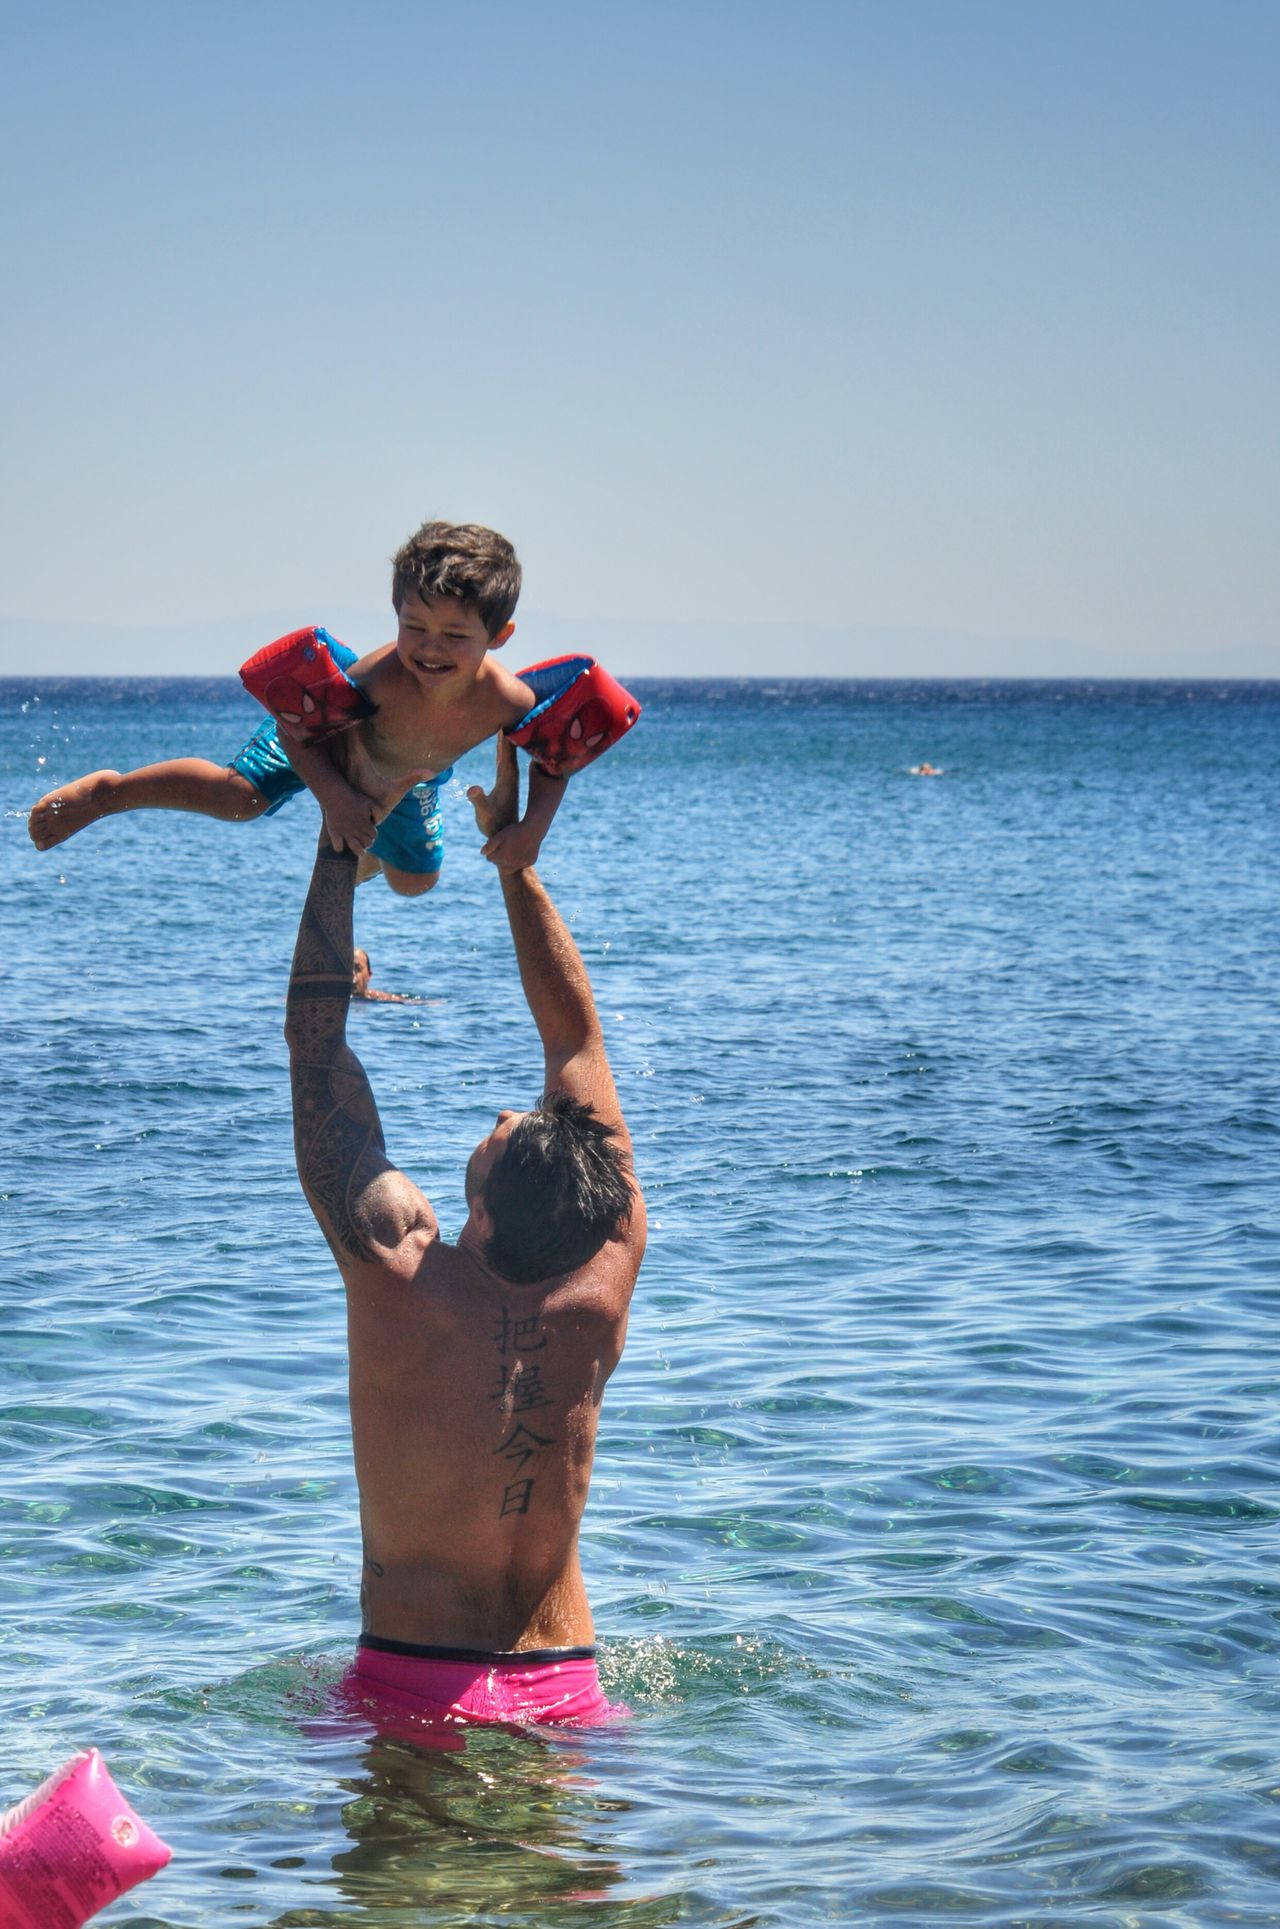 Fatherhood Moments Father & Son Having Fun On The Beach Beachphotography Pricelessmoments  My Son Smiling Summer Views Happy People Memories Smile Pricelessmoments  Togetherness Family Power Vacations Waterfront Enjoyment People Photography Unconditional Love Happiness Connection Capture The Moment Summer Time  Childhood